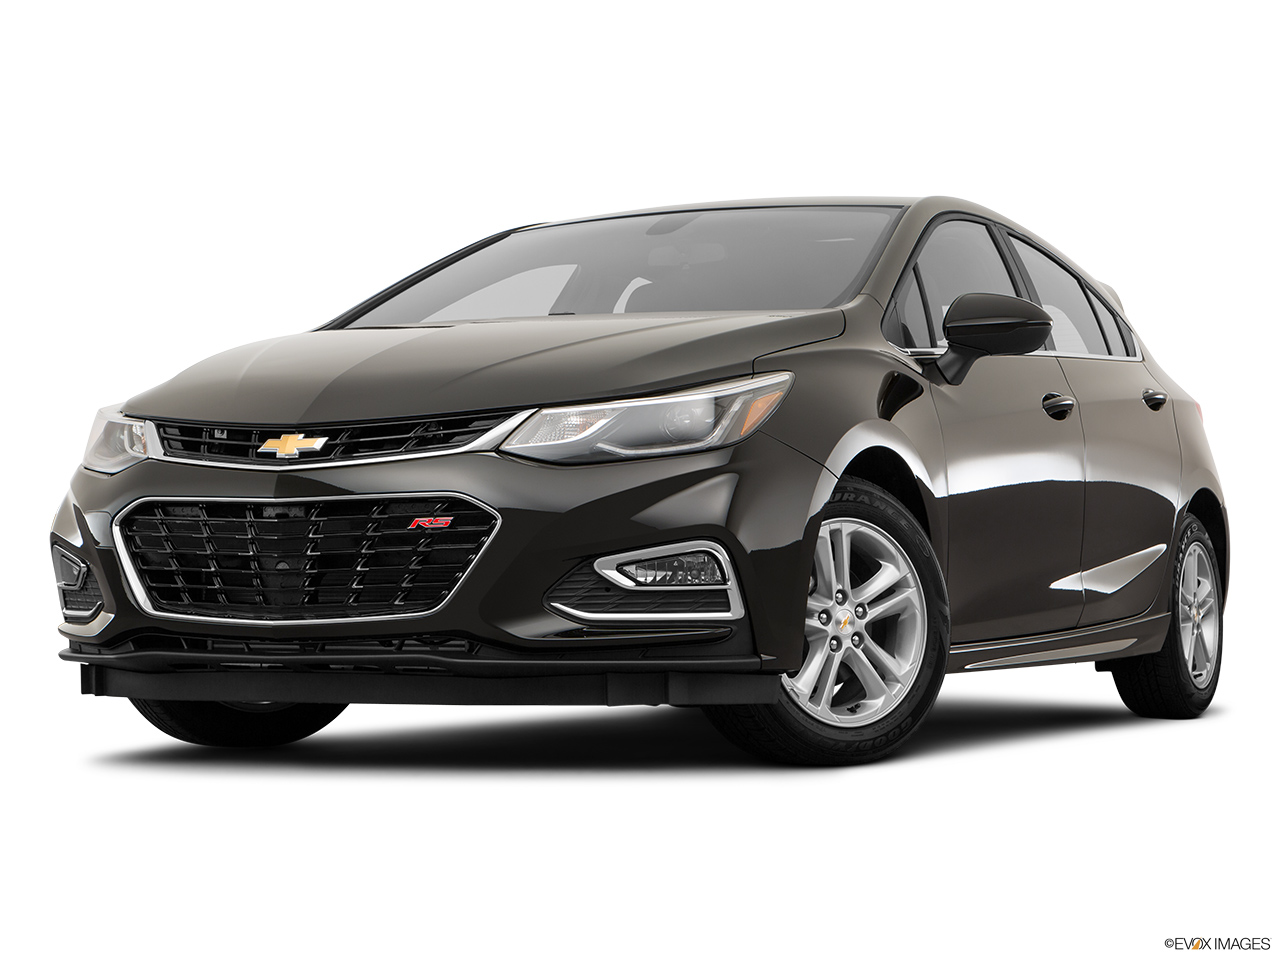 2017 chevrolet cruze prices in uae gulf specs reviews for dubai abu dhabi and sharjah. Black Bedroom Furniture Sets. Home Design Ideas